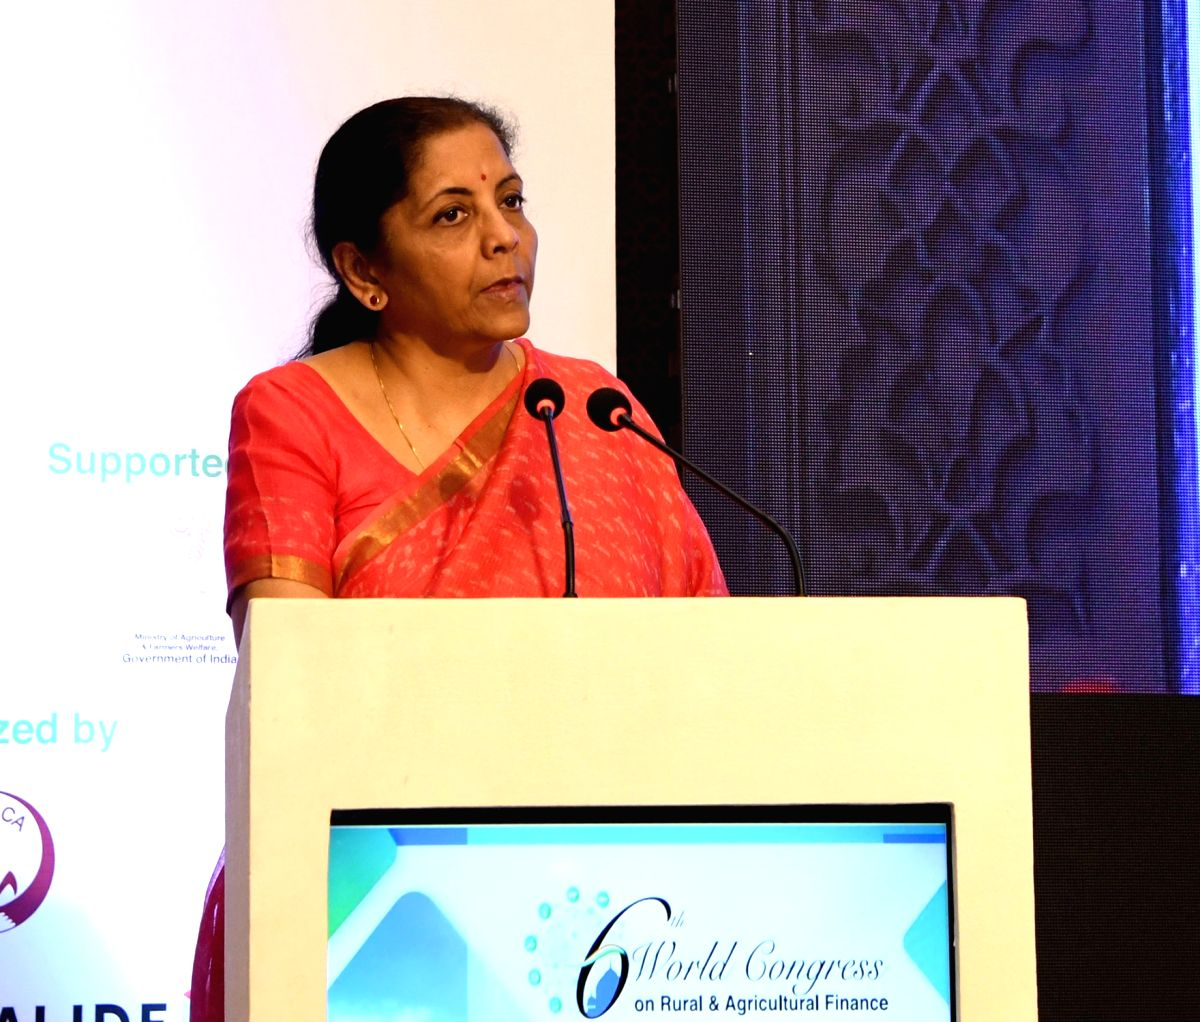 New Delhi: Union Finance and Corporate Affairs Minister Nirmala Sitharaman addresses at the inauguration of the 6th World Congress on Rural and Agricultural Finance jointly organised by the National Bank for Agriculture and Rural Development (NABARD)